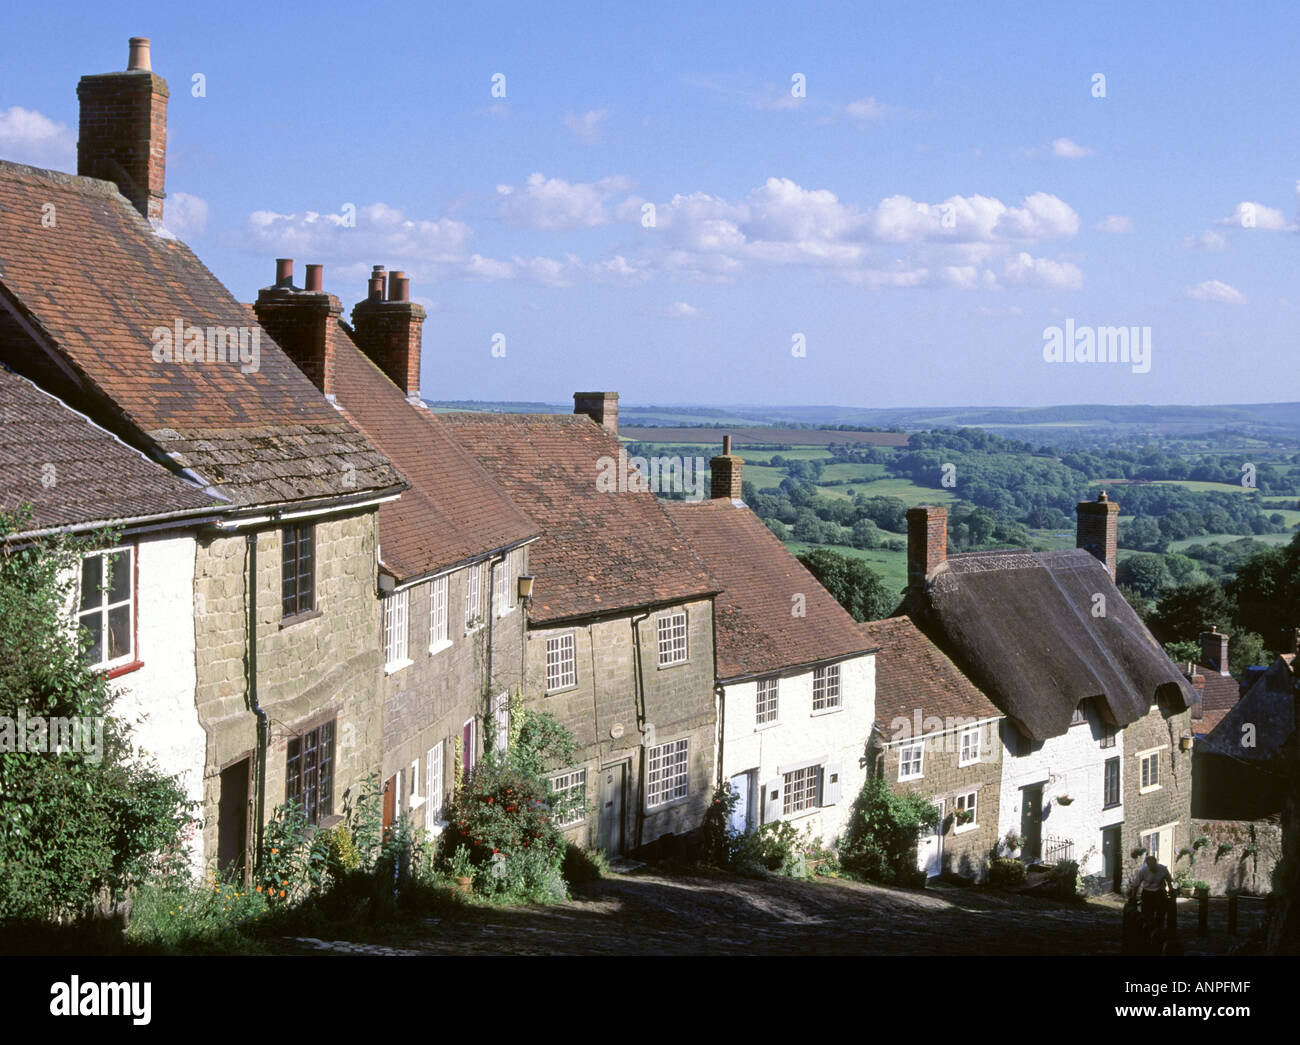 Shaftesbury Gold Hill steep cobbled street with row of old cottages famous location of Hovis bread advert rural landscape beyond - Stock Image